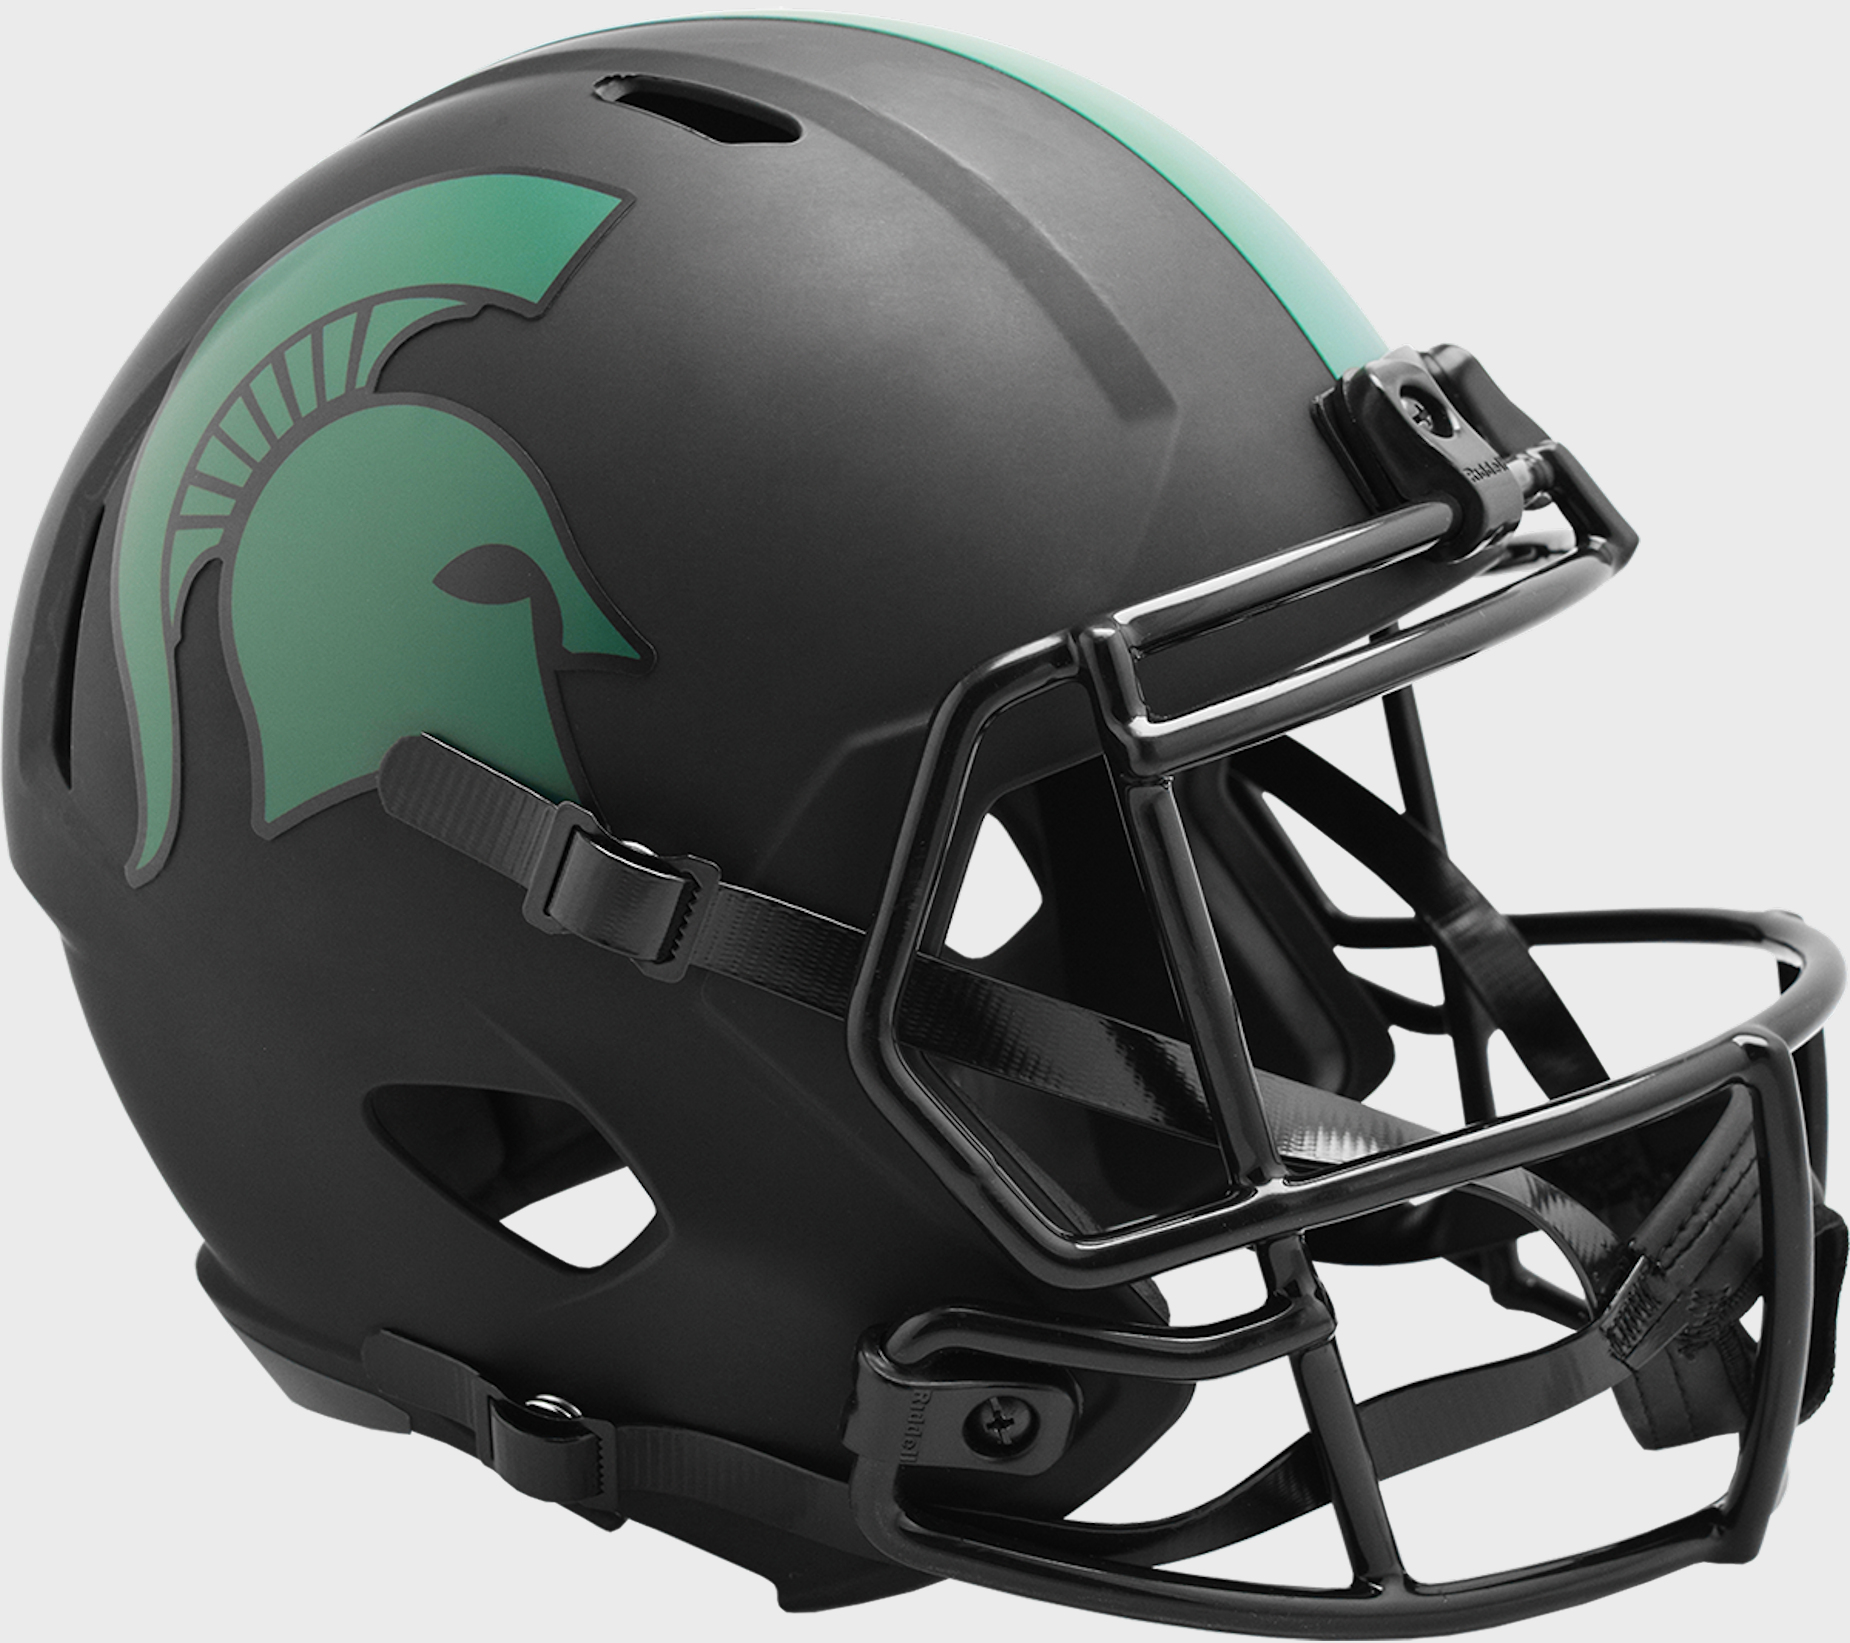 Michigan State Spartans Speed Replica Football Helmet <B>ECLIPSE </B>